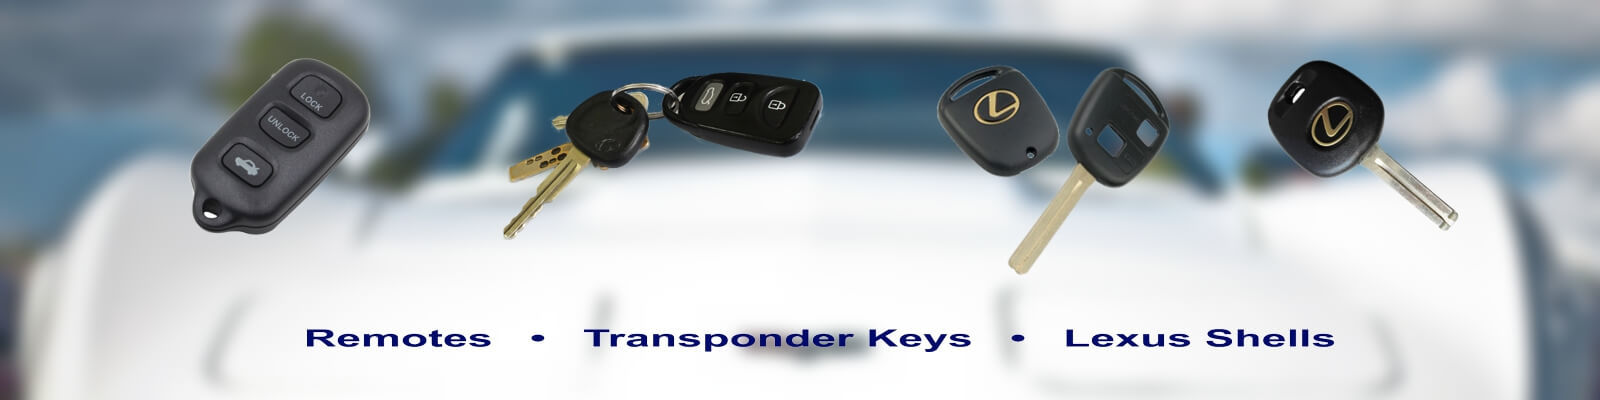 Car Remotes - Keys For Cars Berkeley California (866) 269-5625